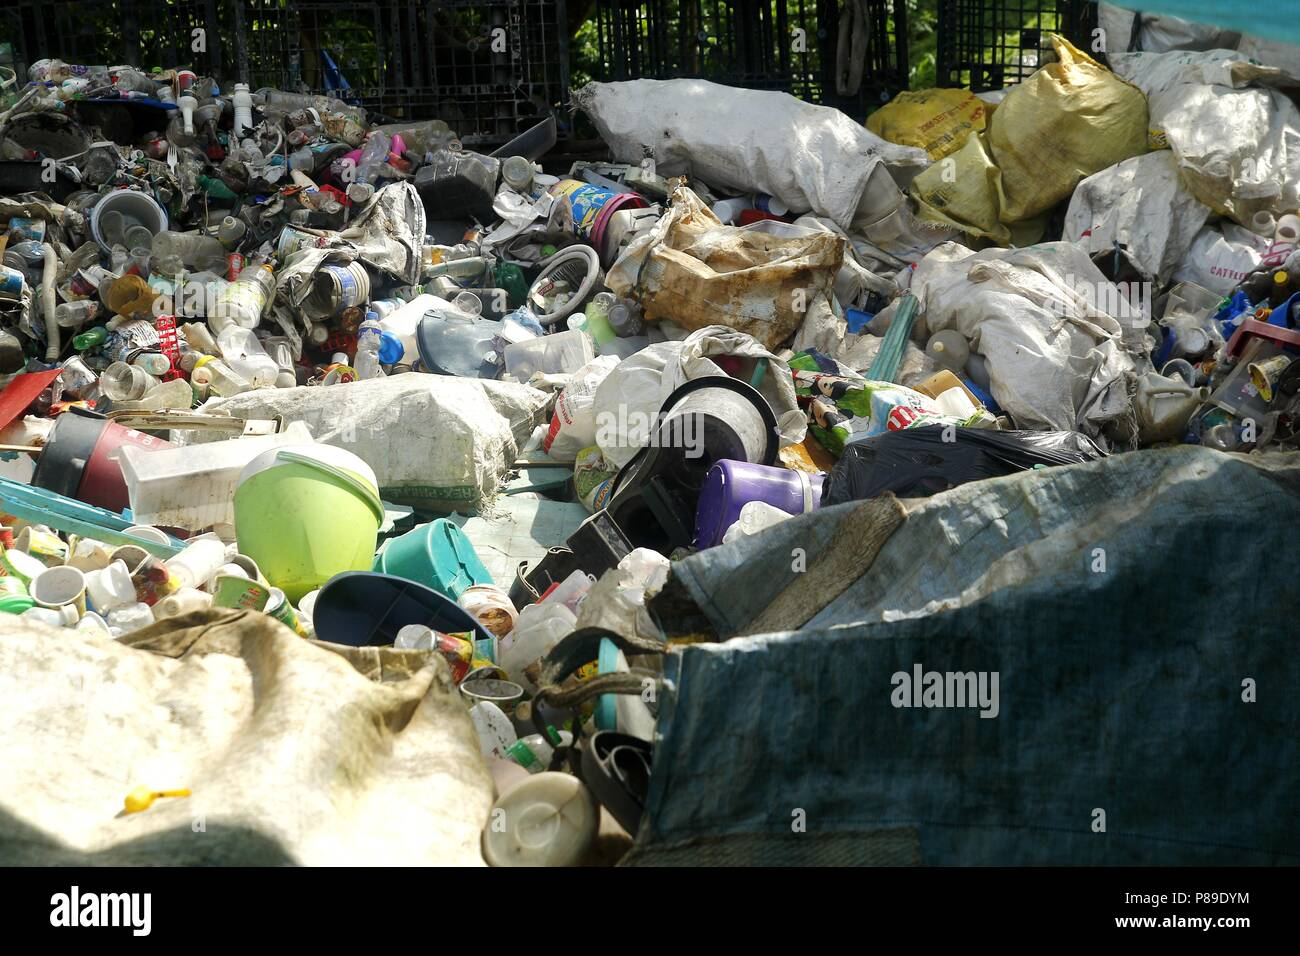 ANGONO, RIZAL, PHILIPPINES - JULY 4 2018: Assorted plastic waste materials at a materials recovery facility ready for sorting and segregation. - Stock Image